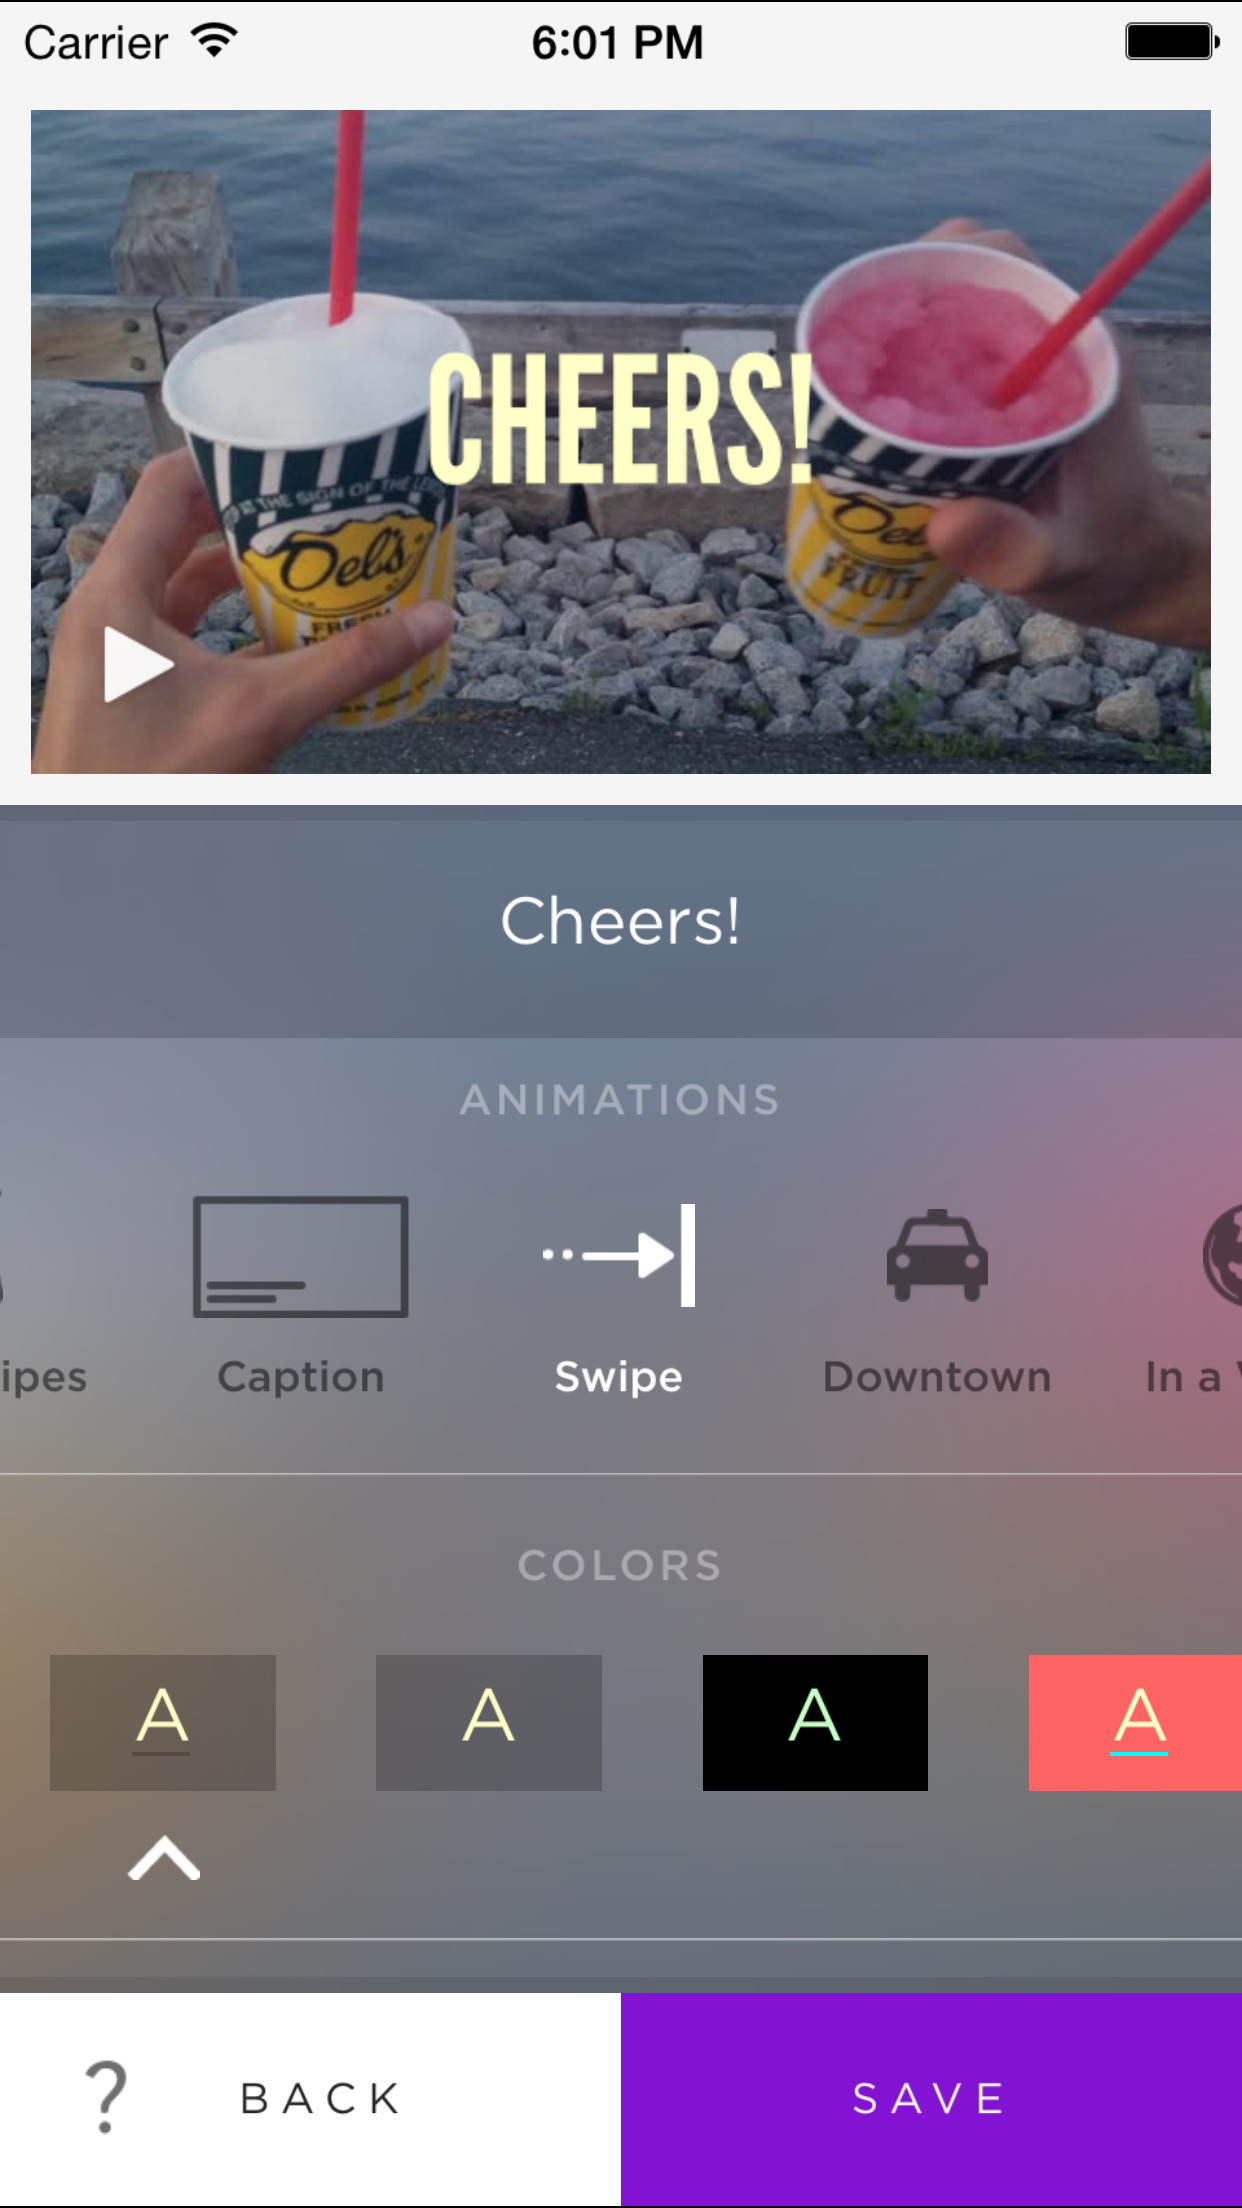 Directr - Simple, Powerful Video Creation for Everyone